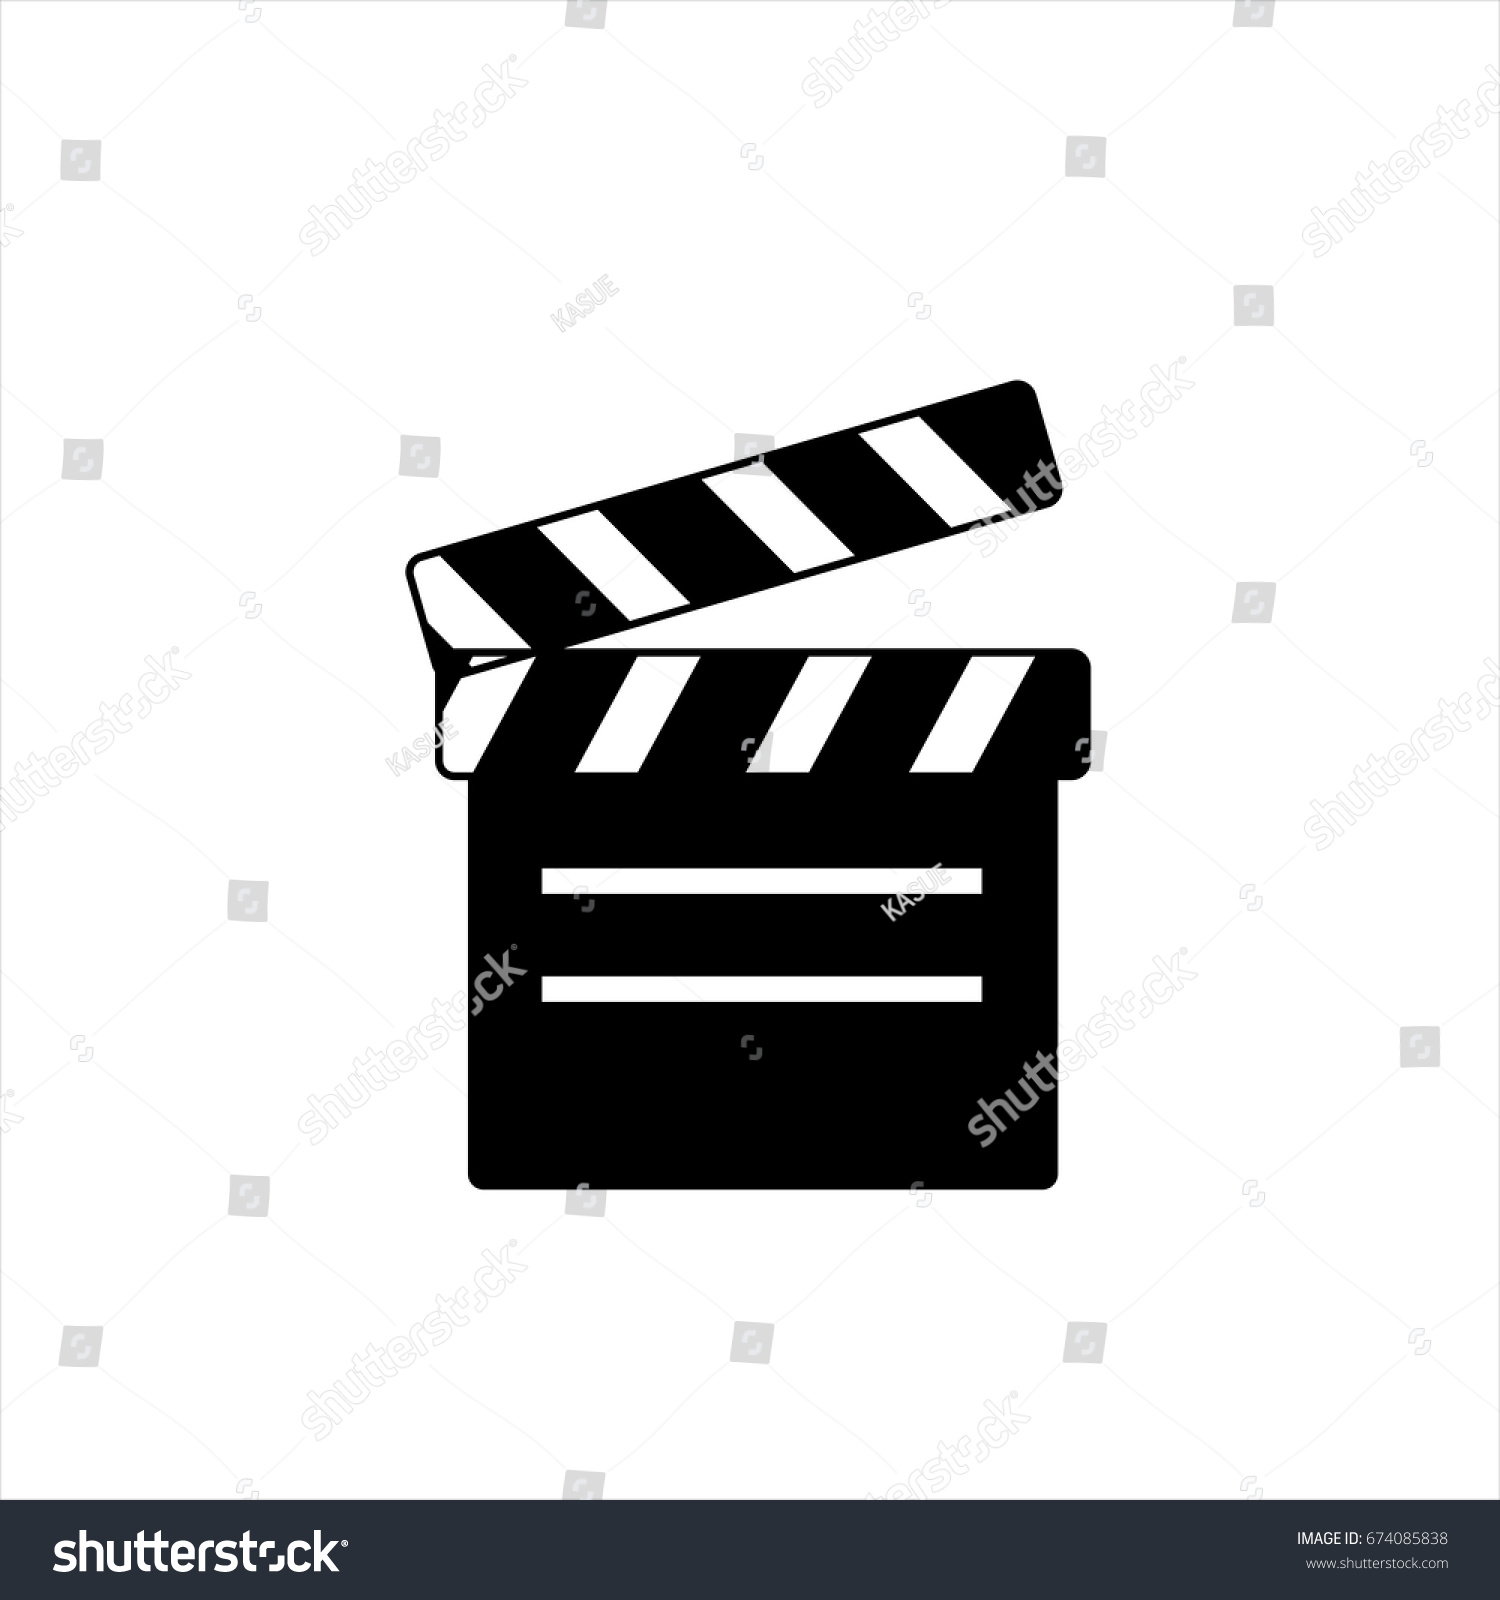 Movie icon trendy flat style isolated stock vector 674085838 movie icon in trendy flat style isolated on background movie icon page symbol for your biocorpaavc